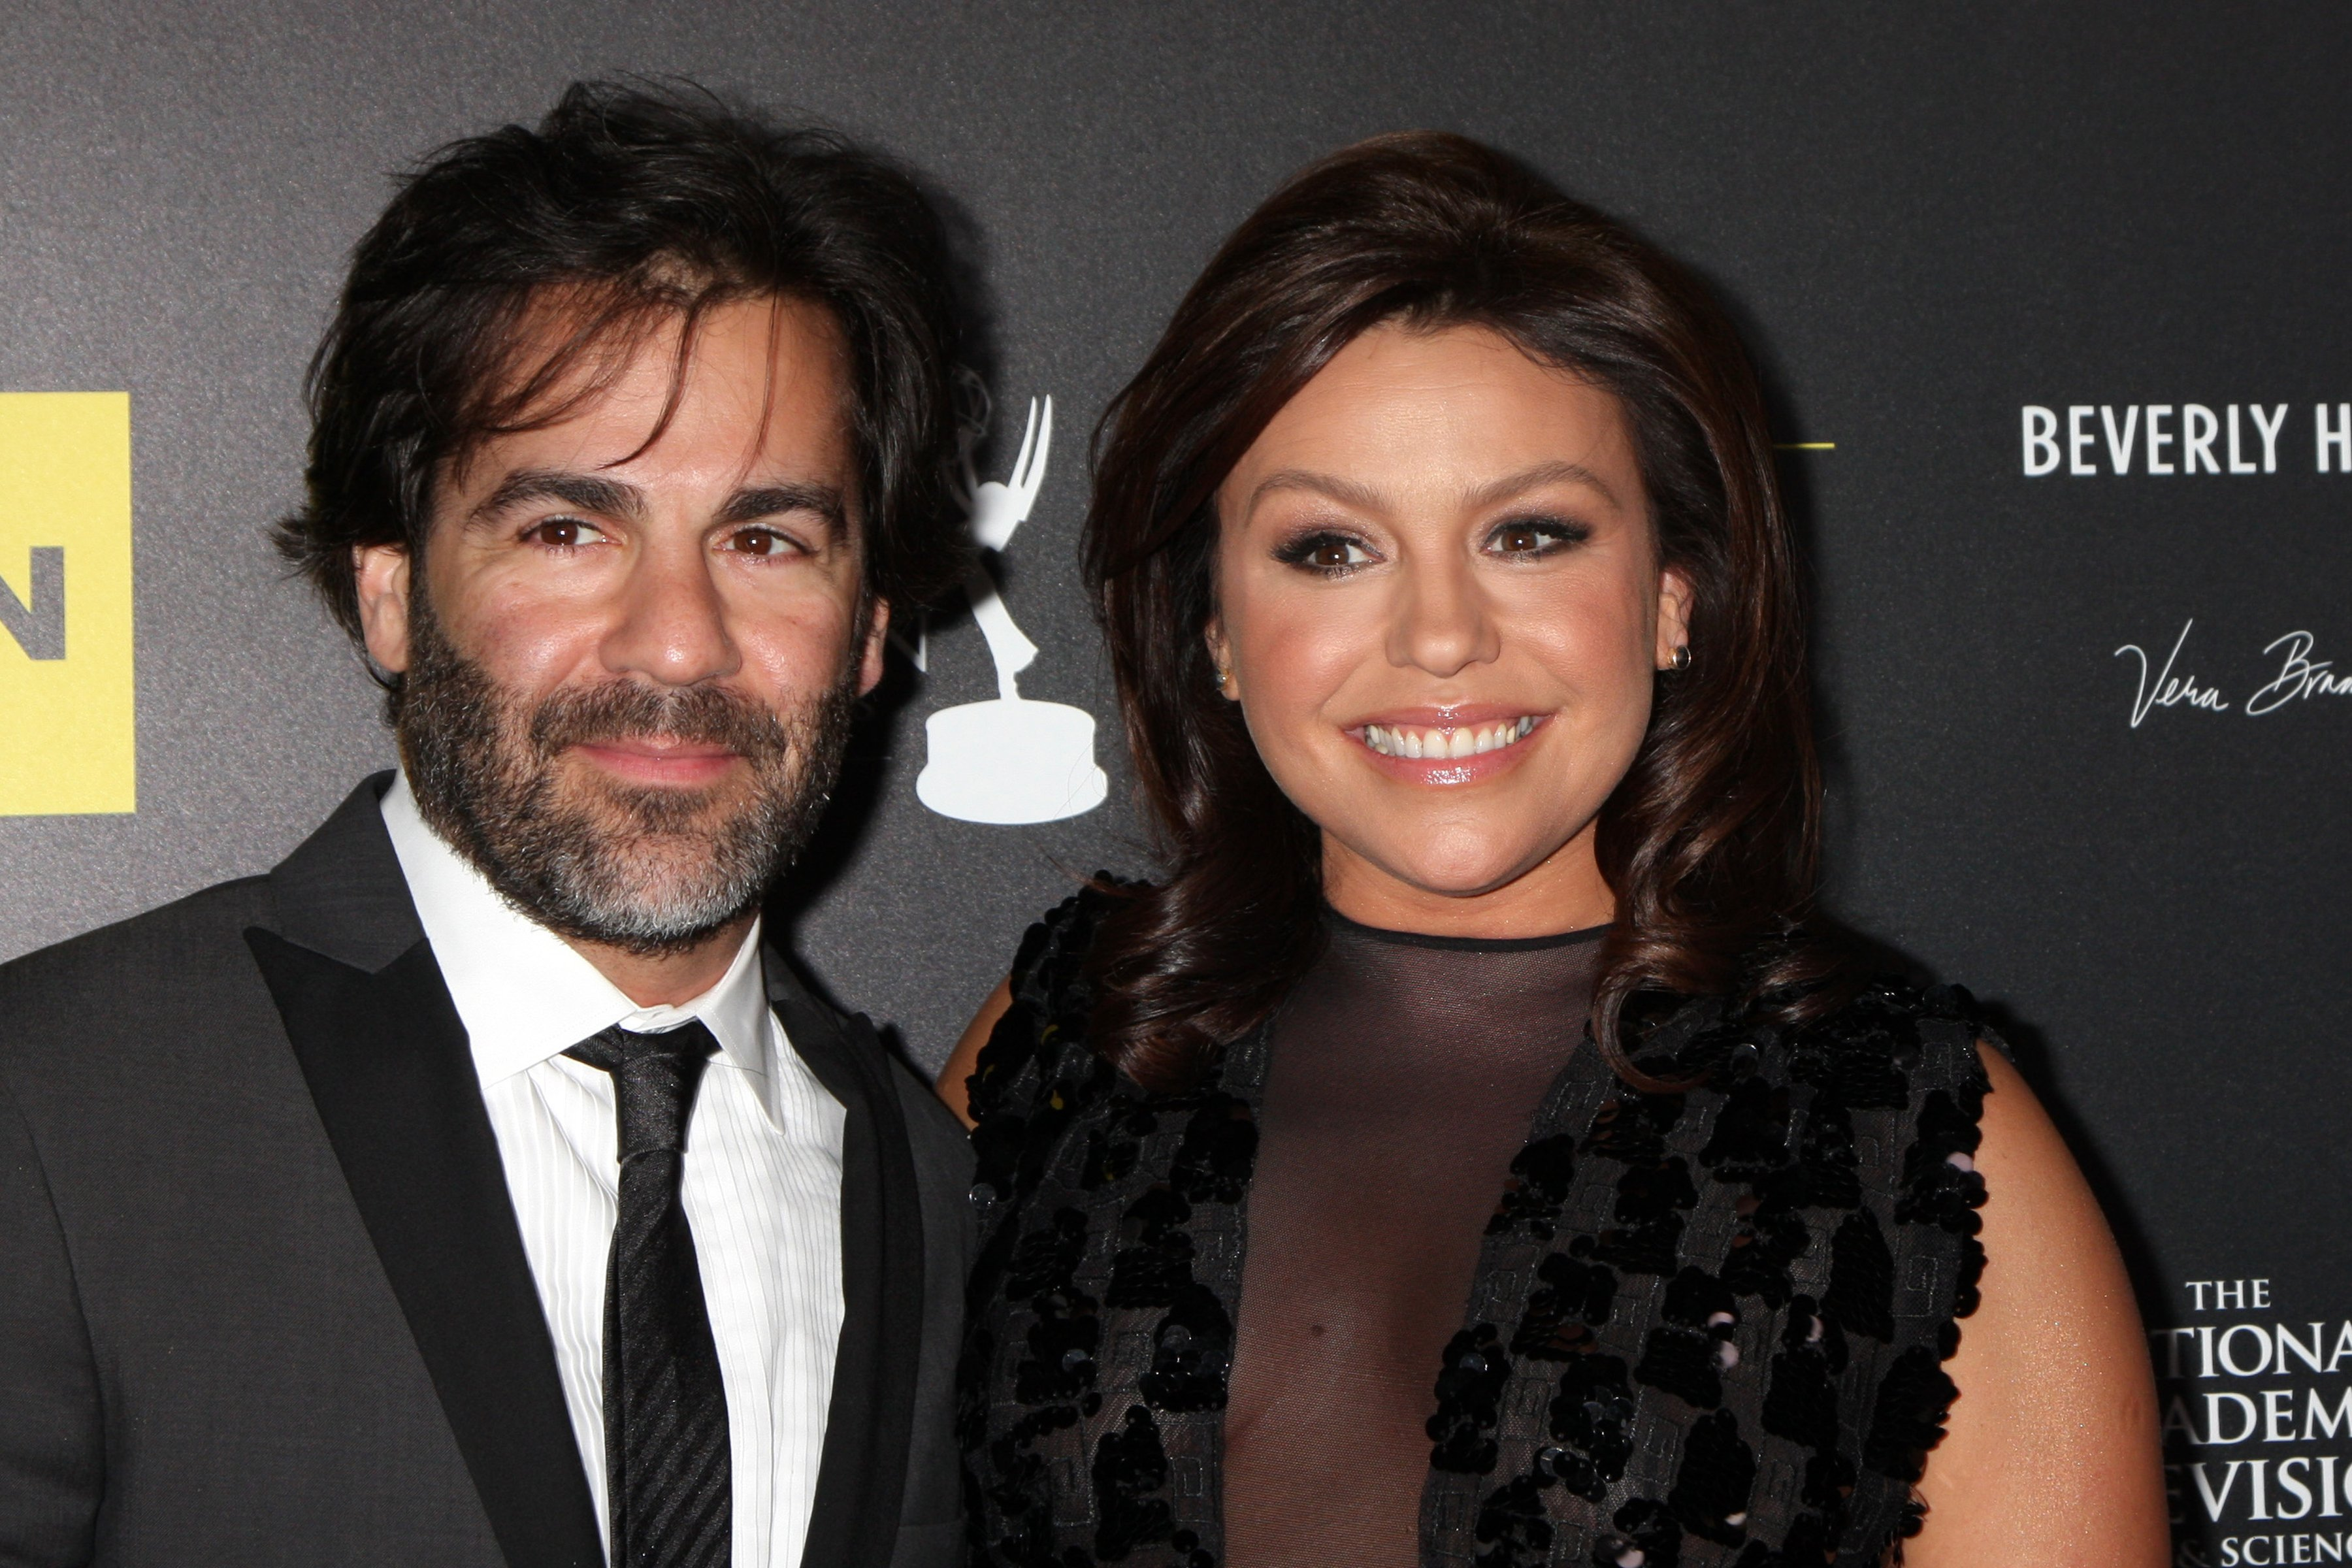 Rachael Ray and husband, John Cusimano at the Daytime Emmy Awards hosted in Beverly Hills, California in 2012. | Photo: Shutterstock.